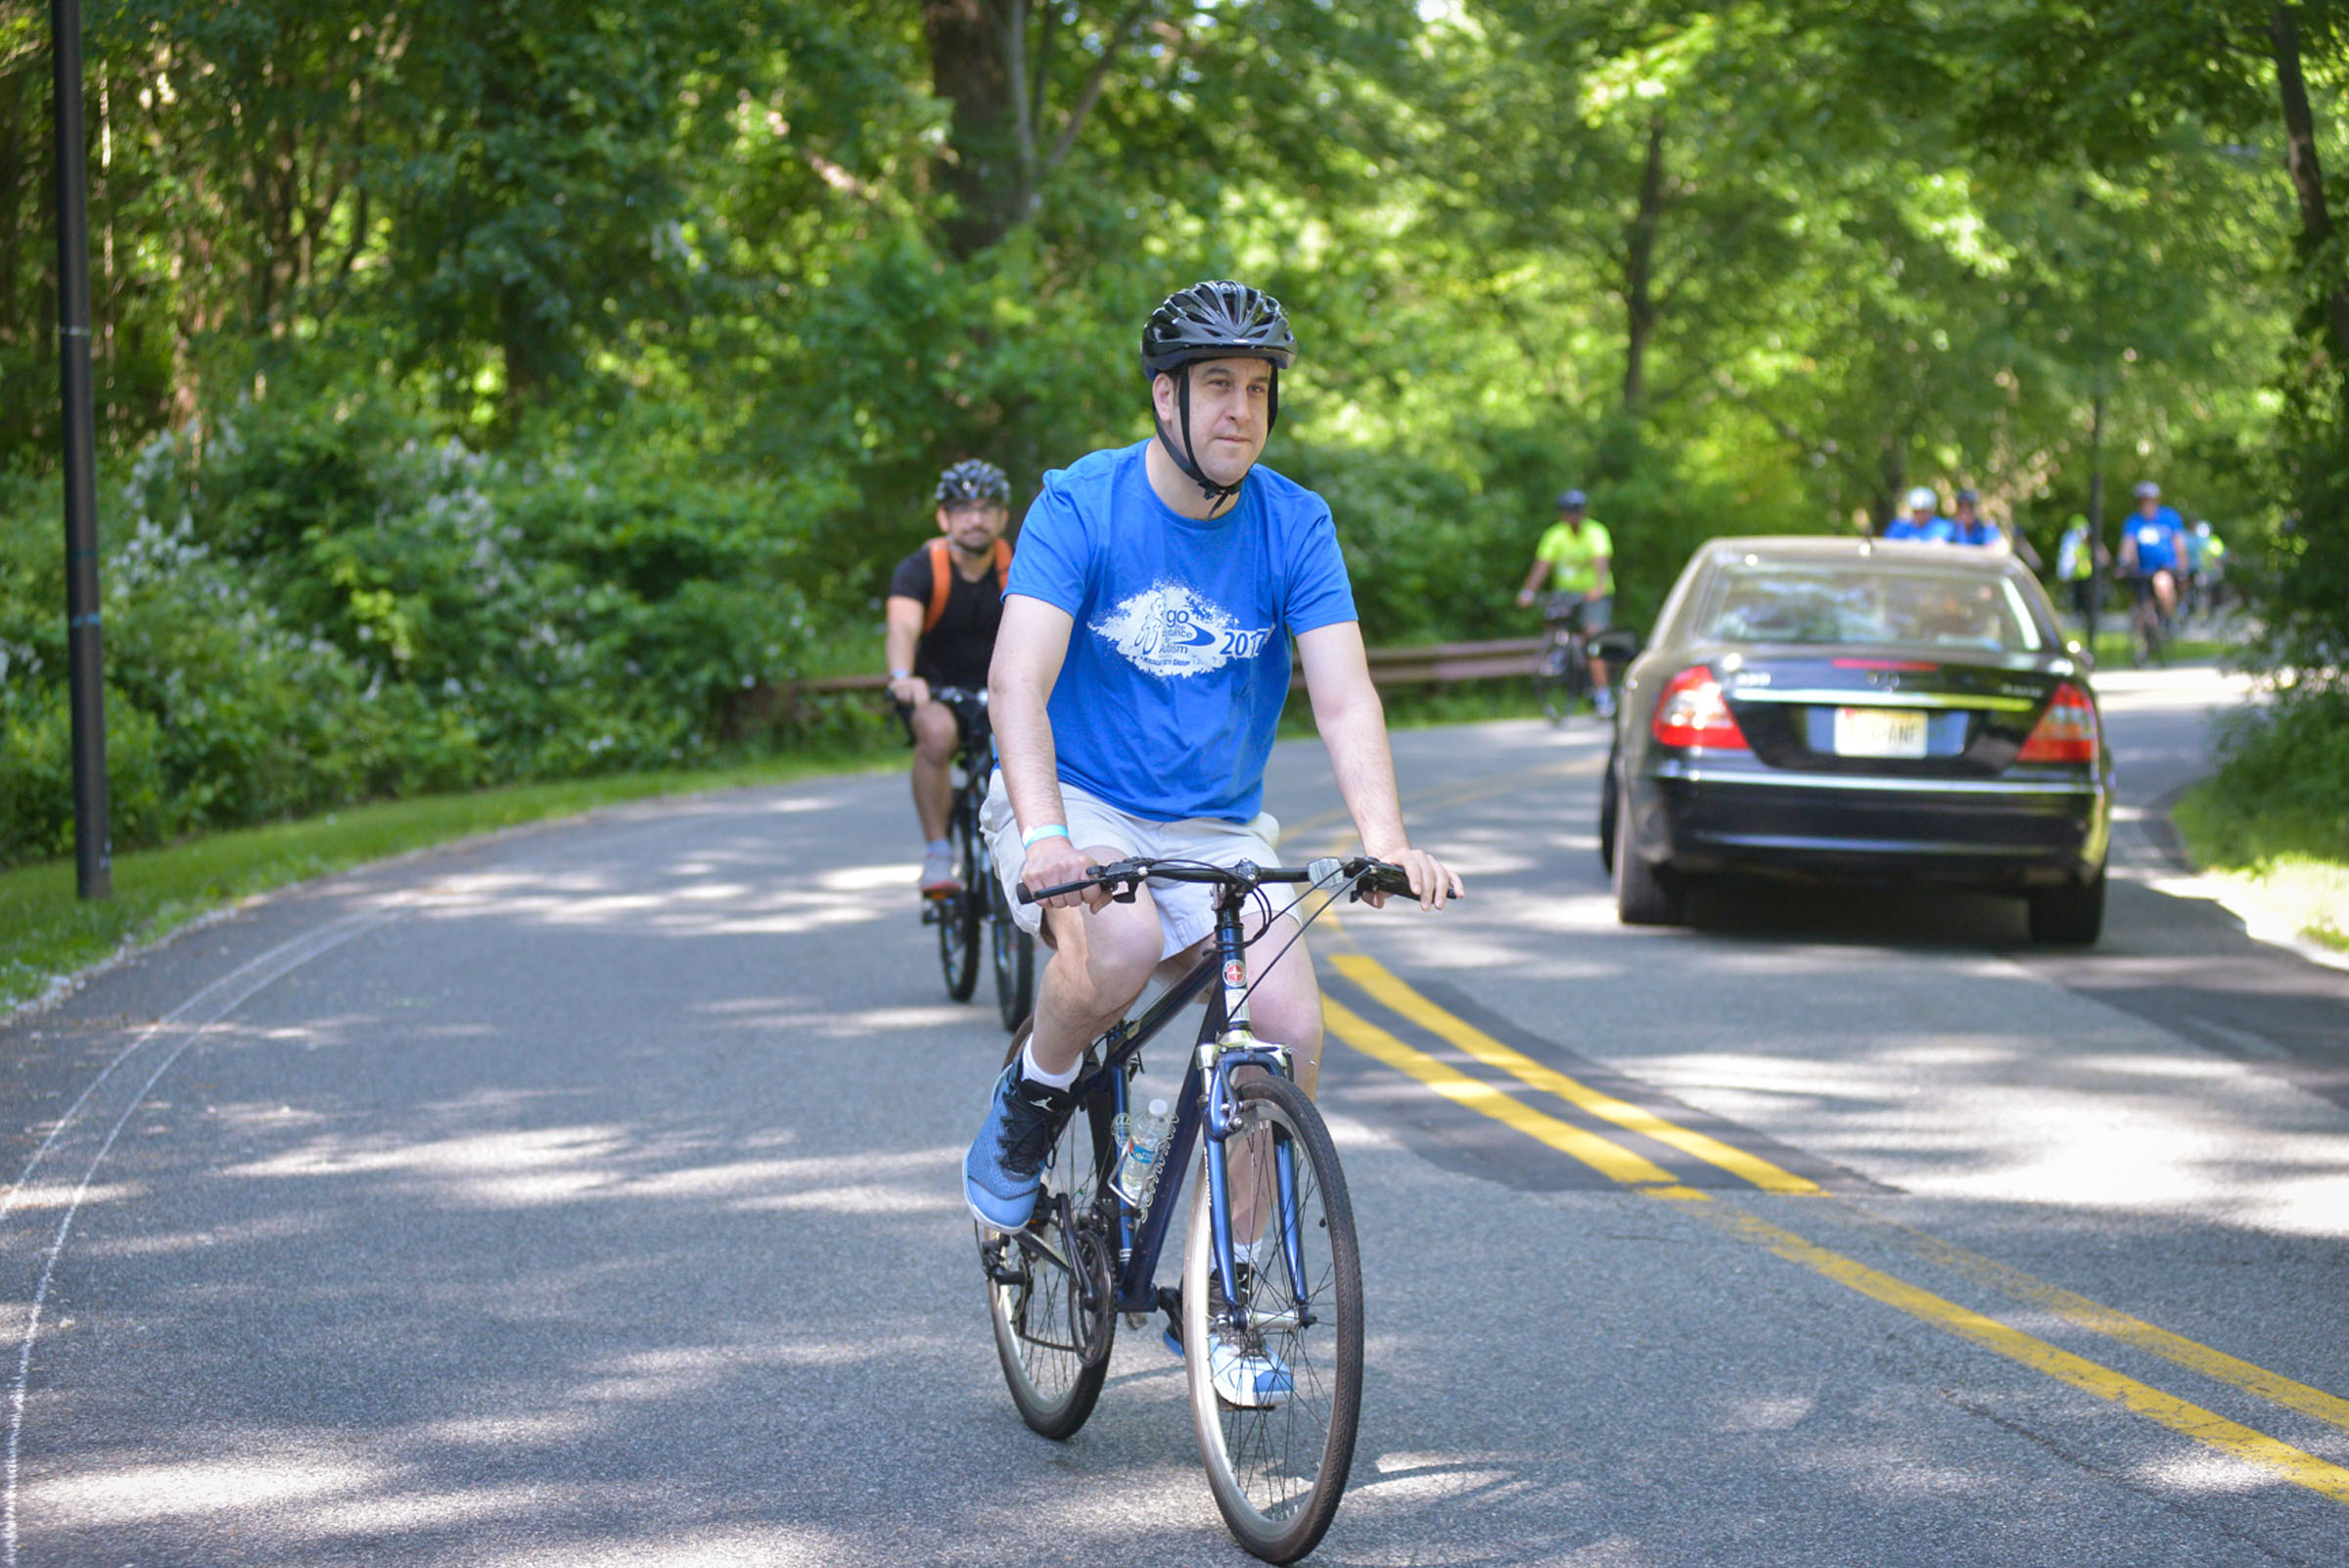 2017-06-04 GTD4A Charity Bike Ride - BCC - Paramus NJ-1932.jpg